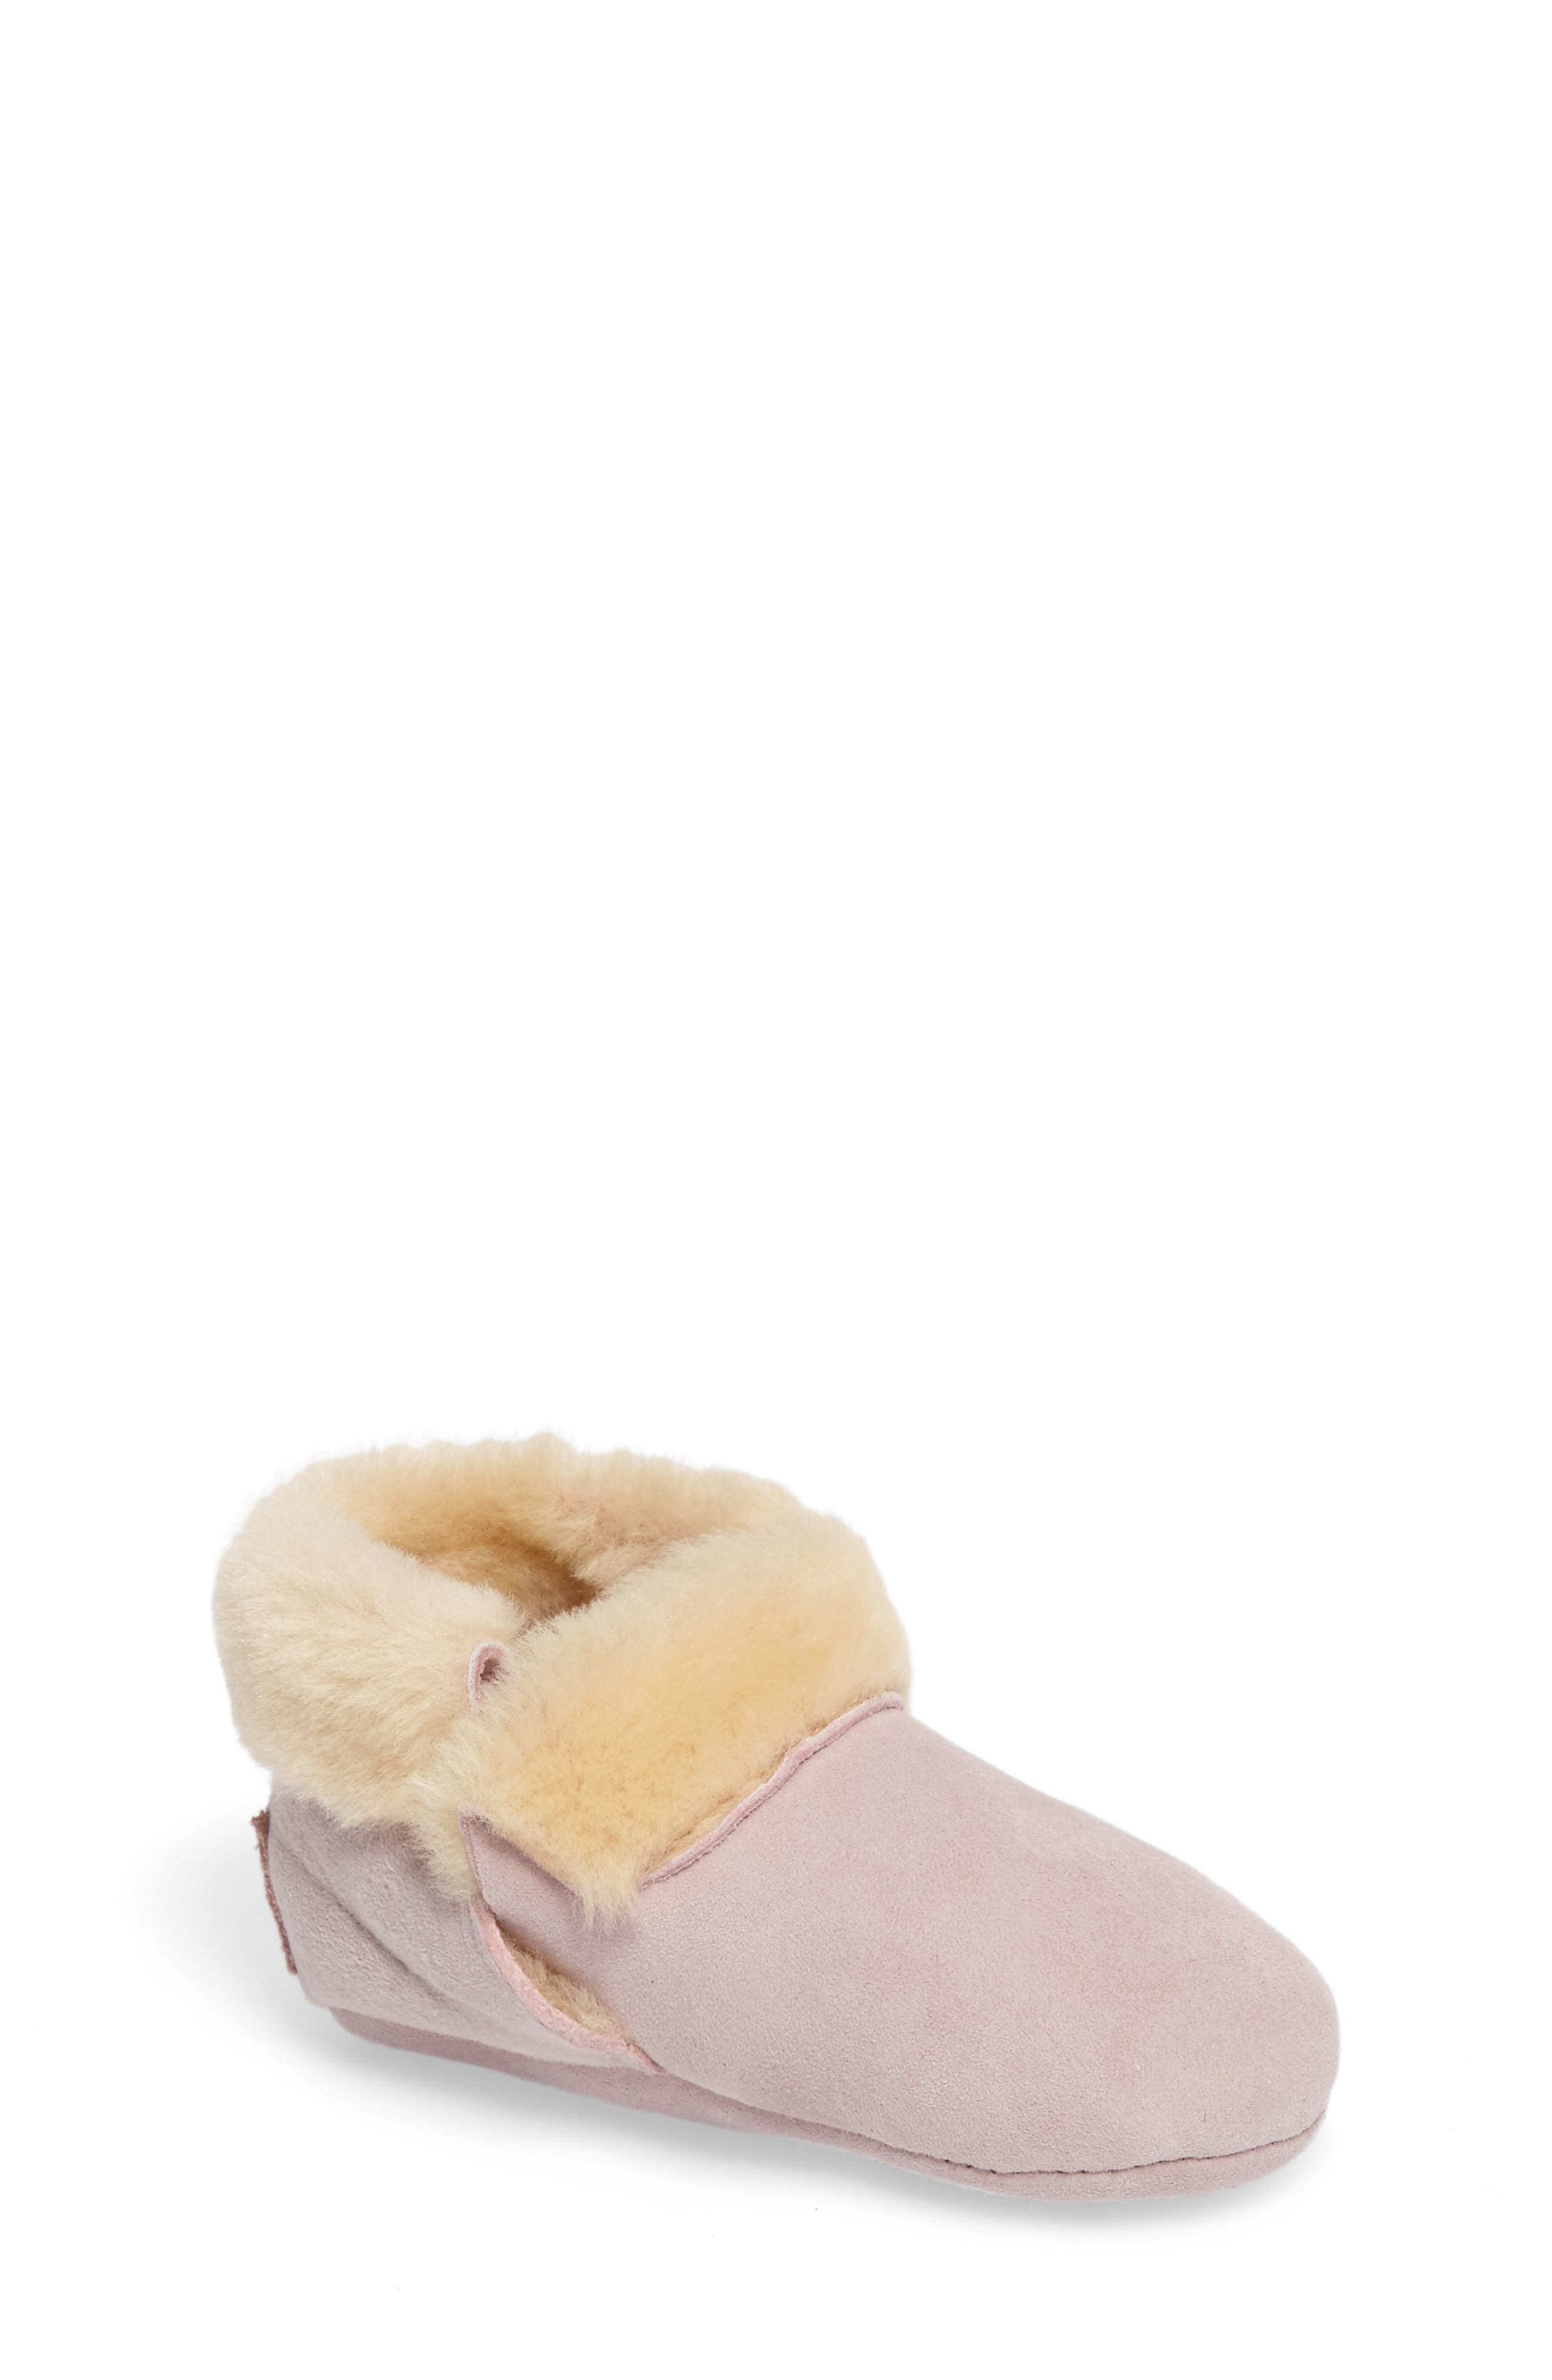 Solvi Genuine Shearling Low Cuffed Bootie,                         Main,                         color, BABY PINK